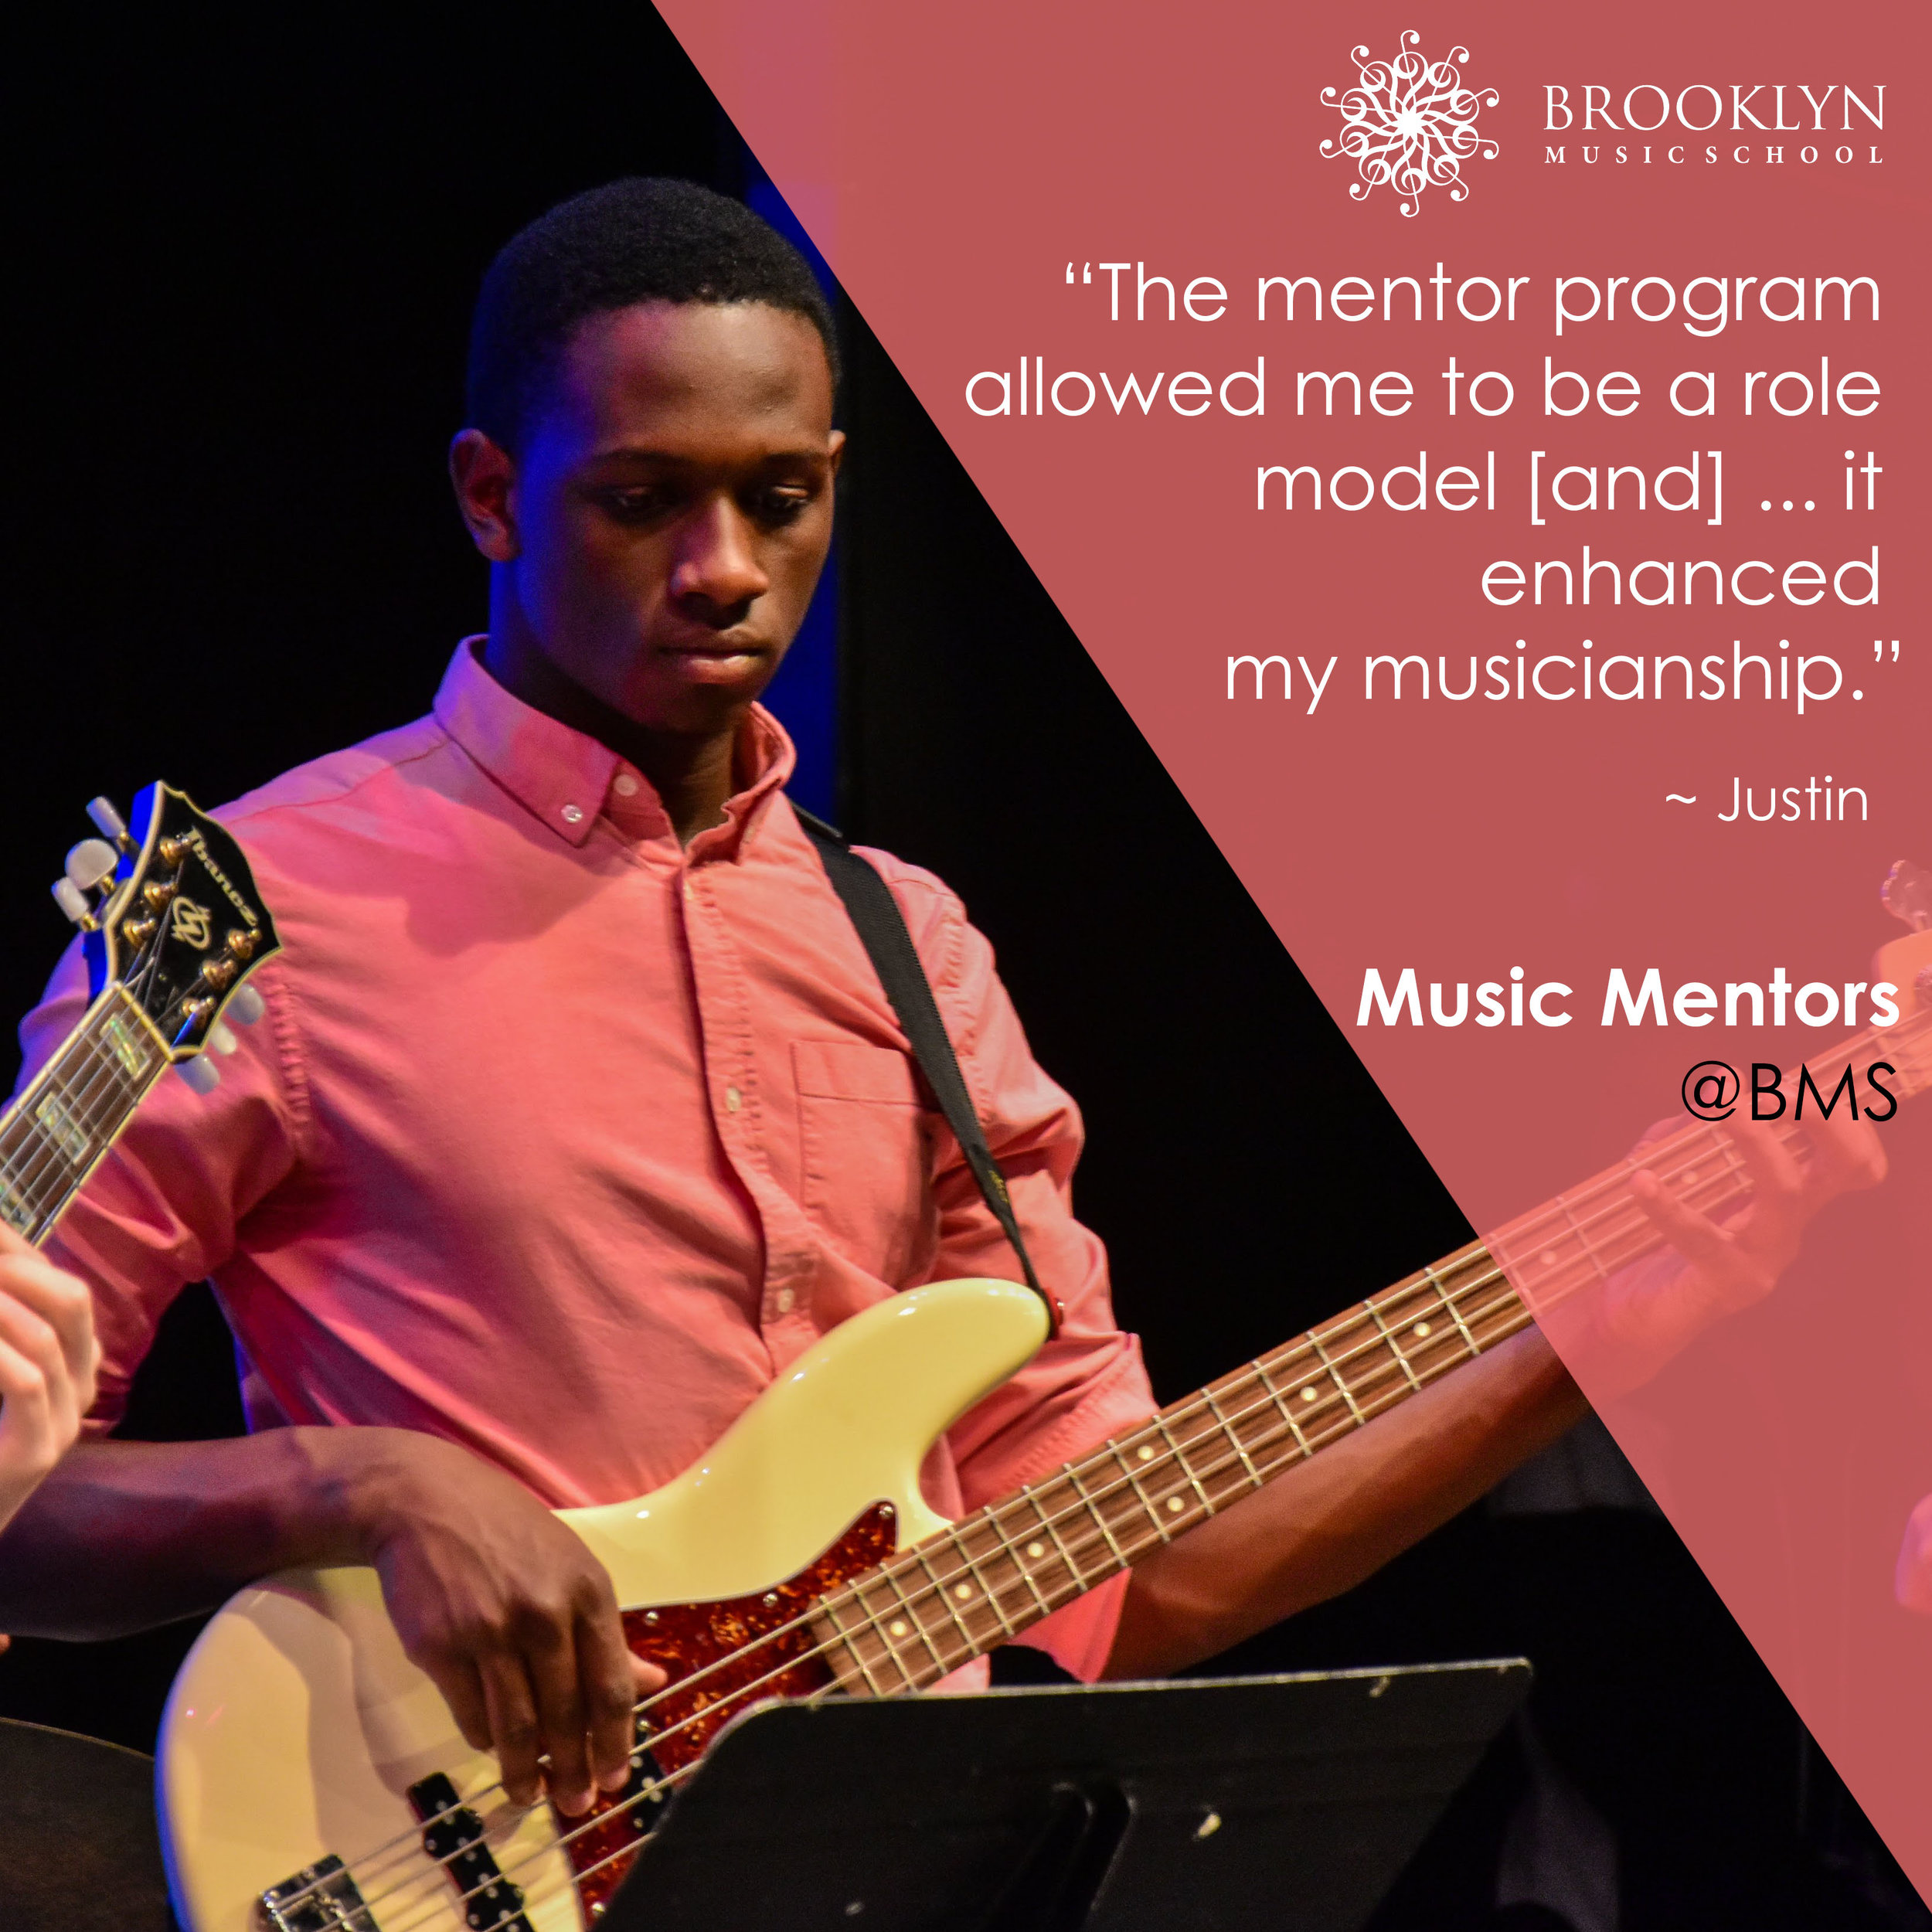 JUSTIN (Bass) - The mentor program has always been a big part of my high school life. As a high school freshman I had loved music and wanted to pursue the career of teaching it. The mentor program had not only allowed me to be a role model to those younger than me, but it enhanced my musicianship. Over the course of four to five years I have participated in rock and jazz band where I have met amazing musicians. The music artists within the Brooklyn Music School are generous and courteous towards the mentors. This family friendly music school has brought my love for music to new heights as I was always excited to show up. I have been honored to take part in gigs at the Sidewalk Café as well as a Music School Belgium. There has never been a boring day while participating in the mentor program. There is always something new to learn as every day passes. As my senior year progresses, new people appear just as eager to learn as I was. When I leave the program for college I anticipate there will be a new wave of musicians that will take part in the program with the same eagerness and passion.